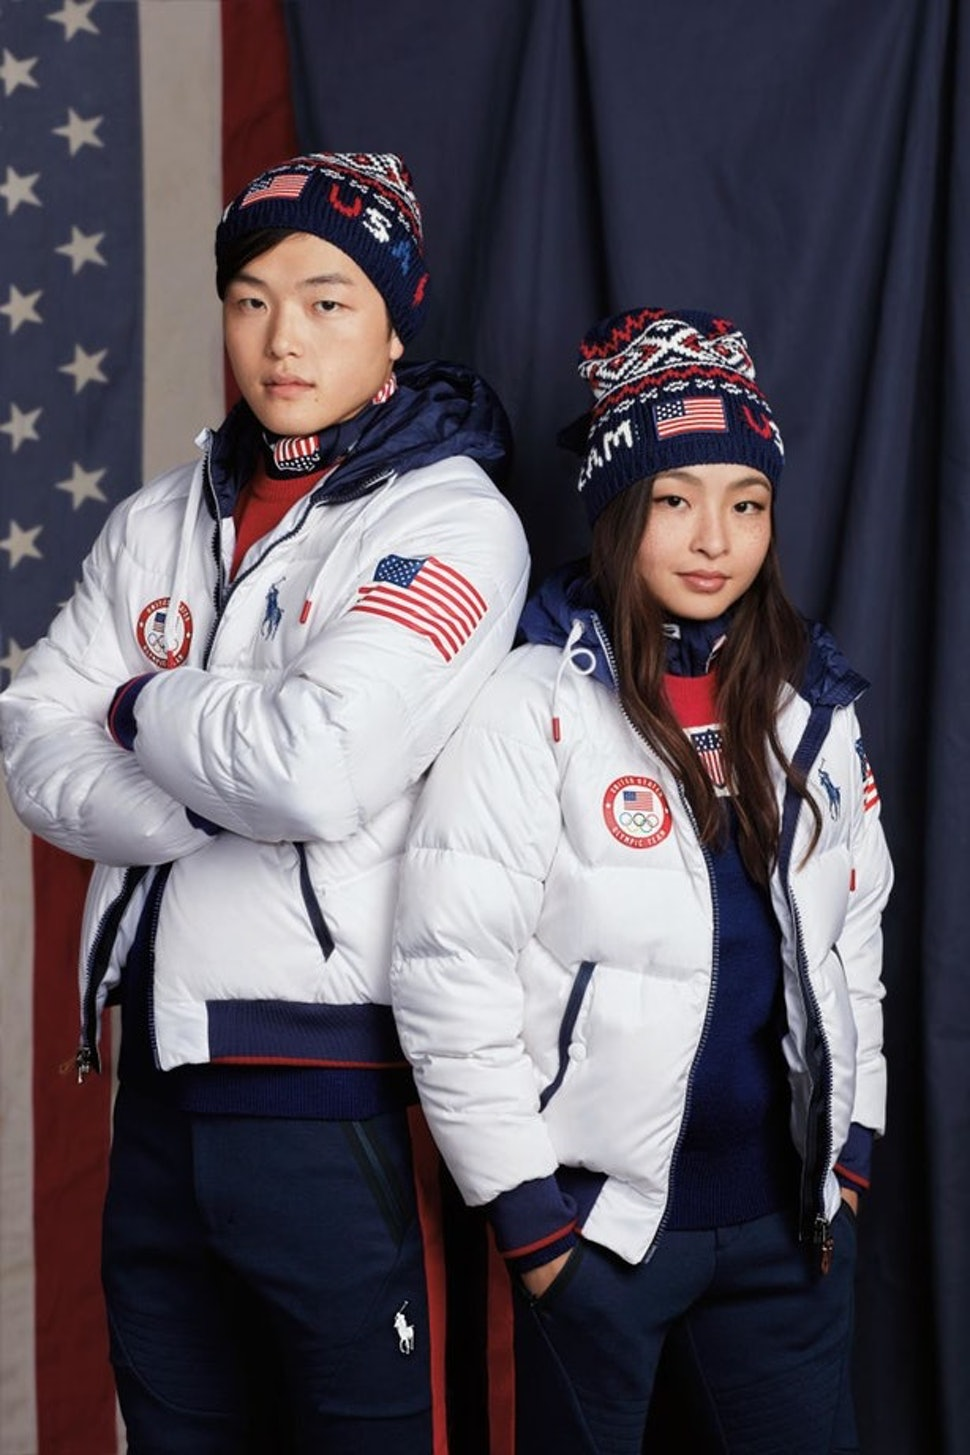 Team Usas 2018 Olympic Closing Ceremony Uniforms Cost Almost As